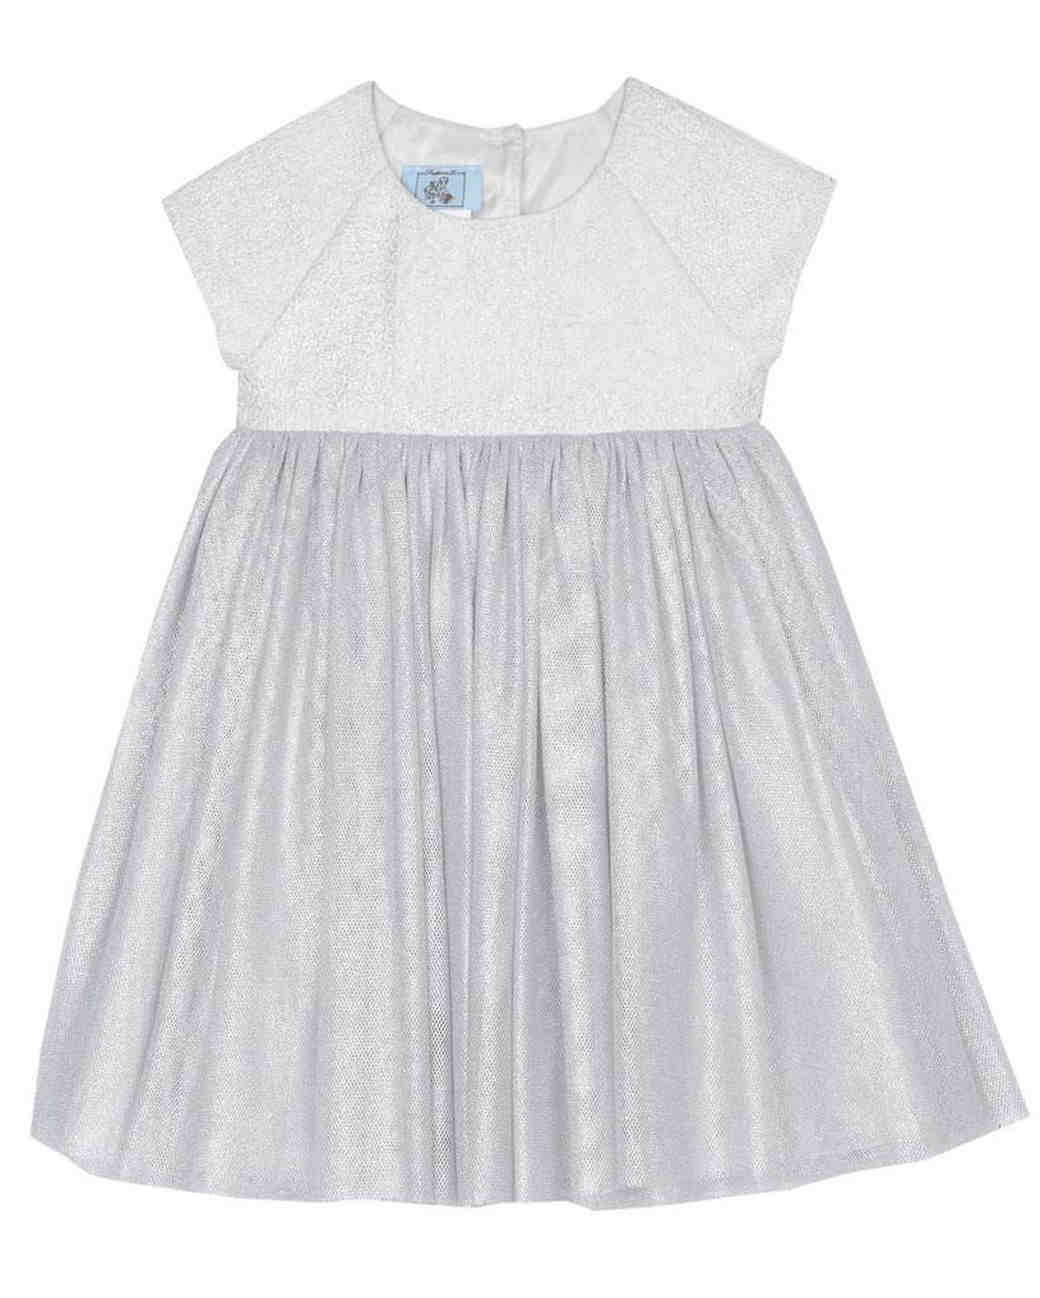 Cute And Comfortable Short Sleeve Flower Girl Dresses Martha